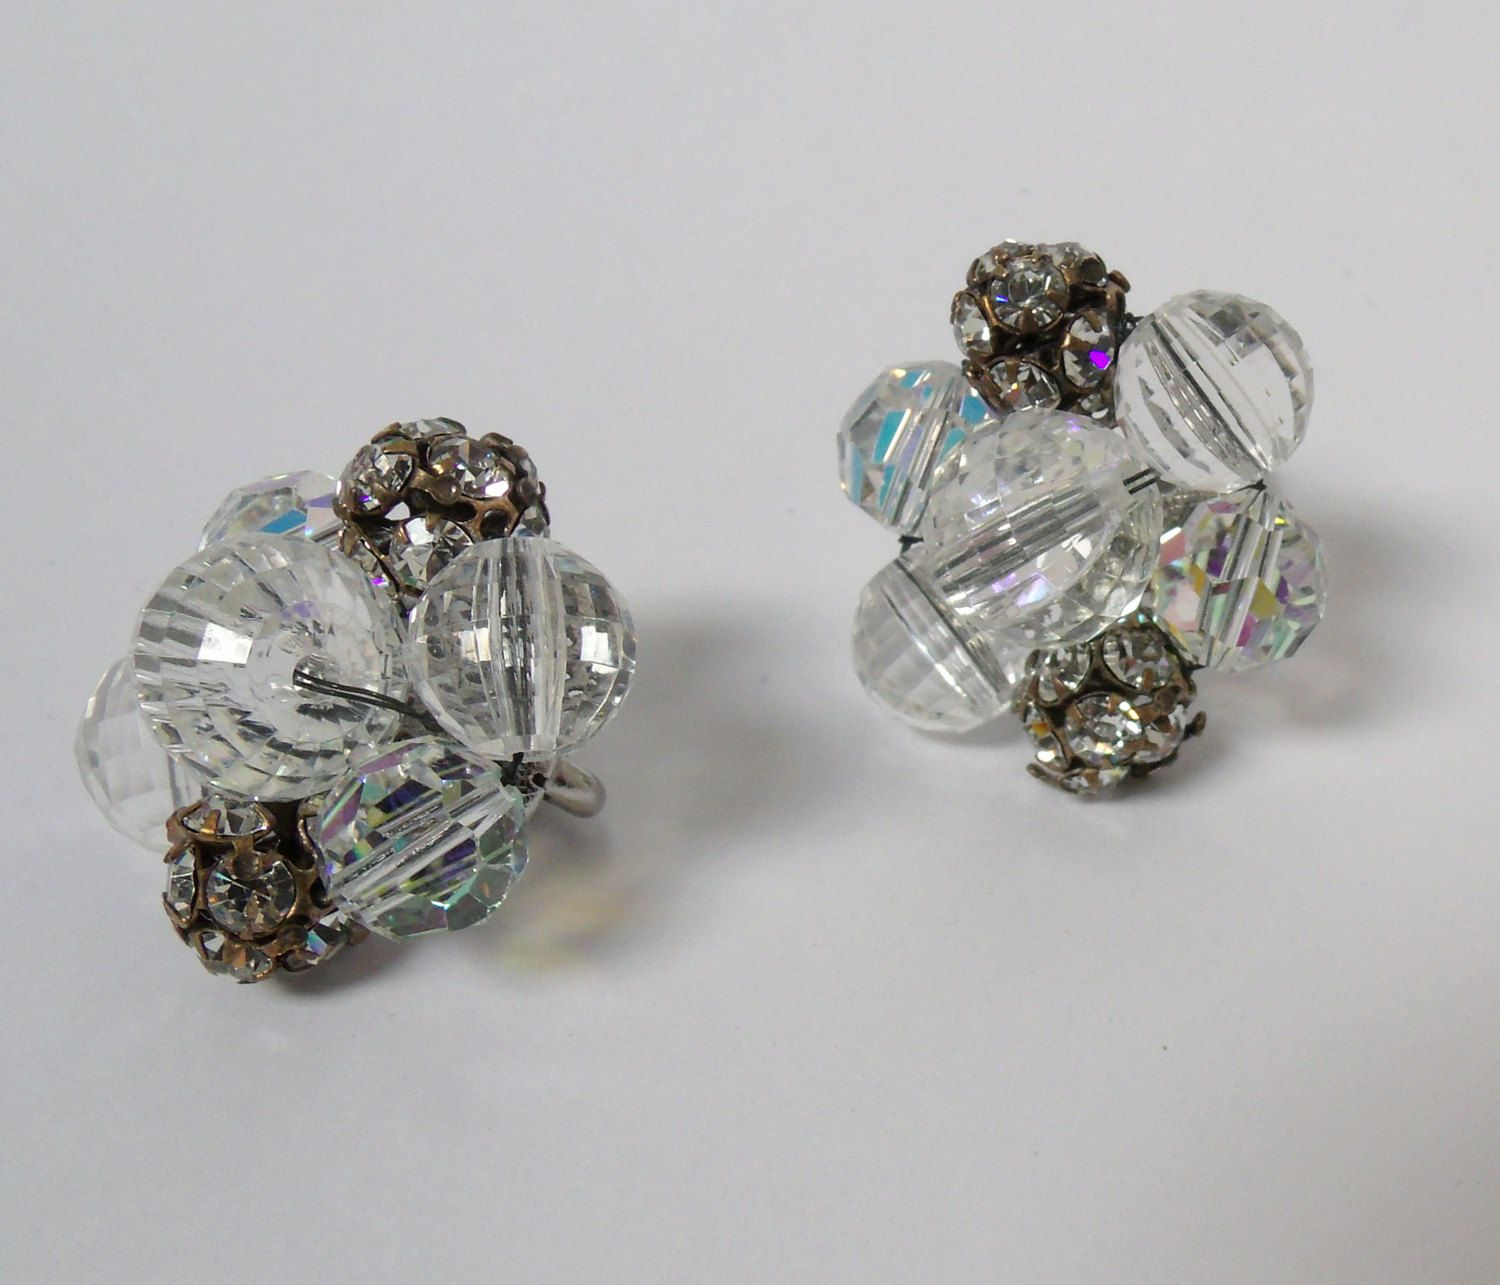 Vintage Vogue Earrings Faceted Ab Crystal G Ball Beads By Antiquemee On Etsy